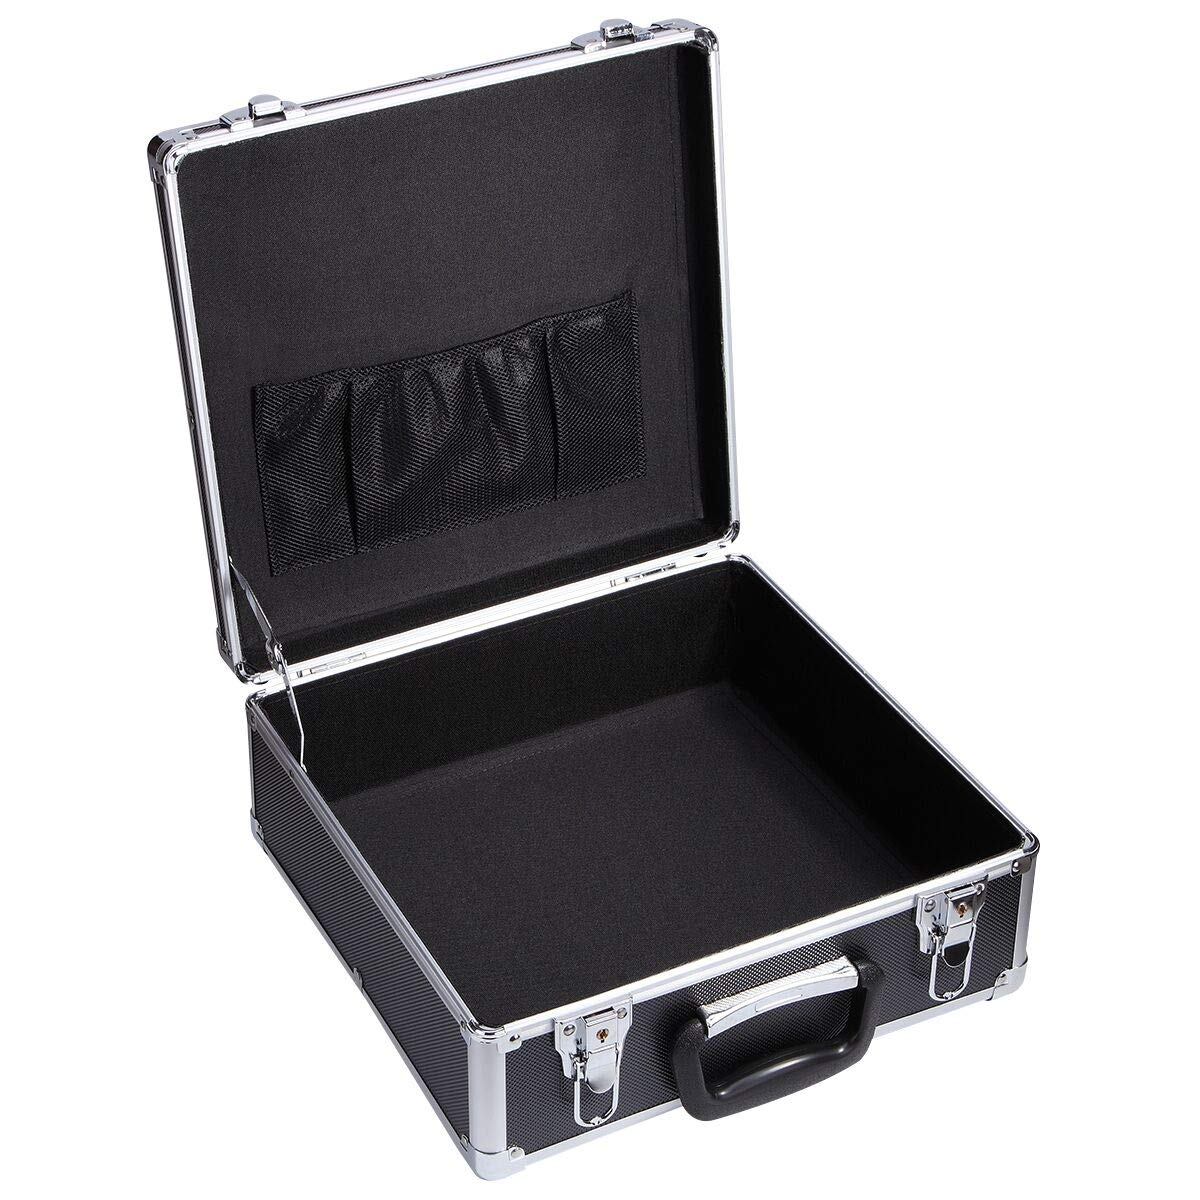 Black Aluminum Tool Boxes Hard Briefcase Functional Organizer Carrying Case,13.38''Length,13.38'' Width, Hight 5.5''